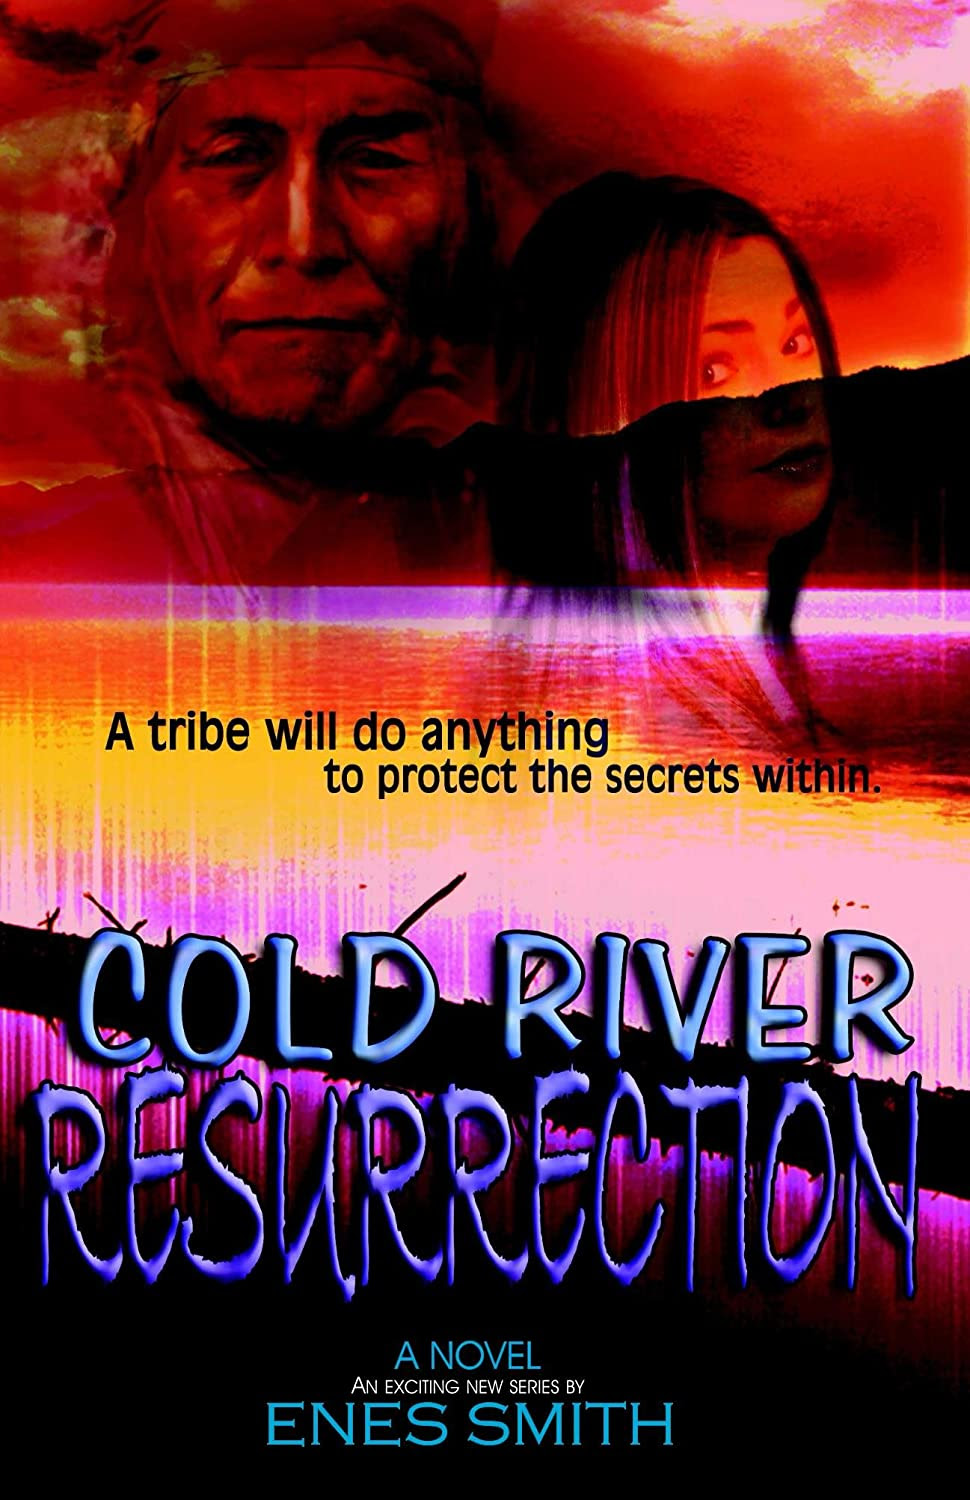 http://www.amazon.com/Cold-River-Resurrection-Book-ebook/dp/B004W8D9B8/